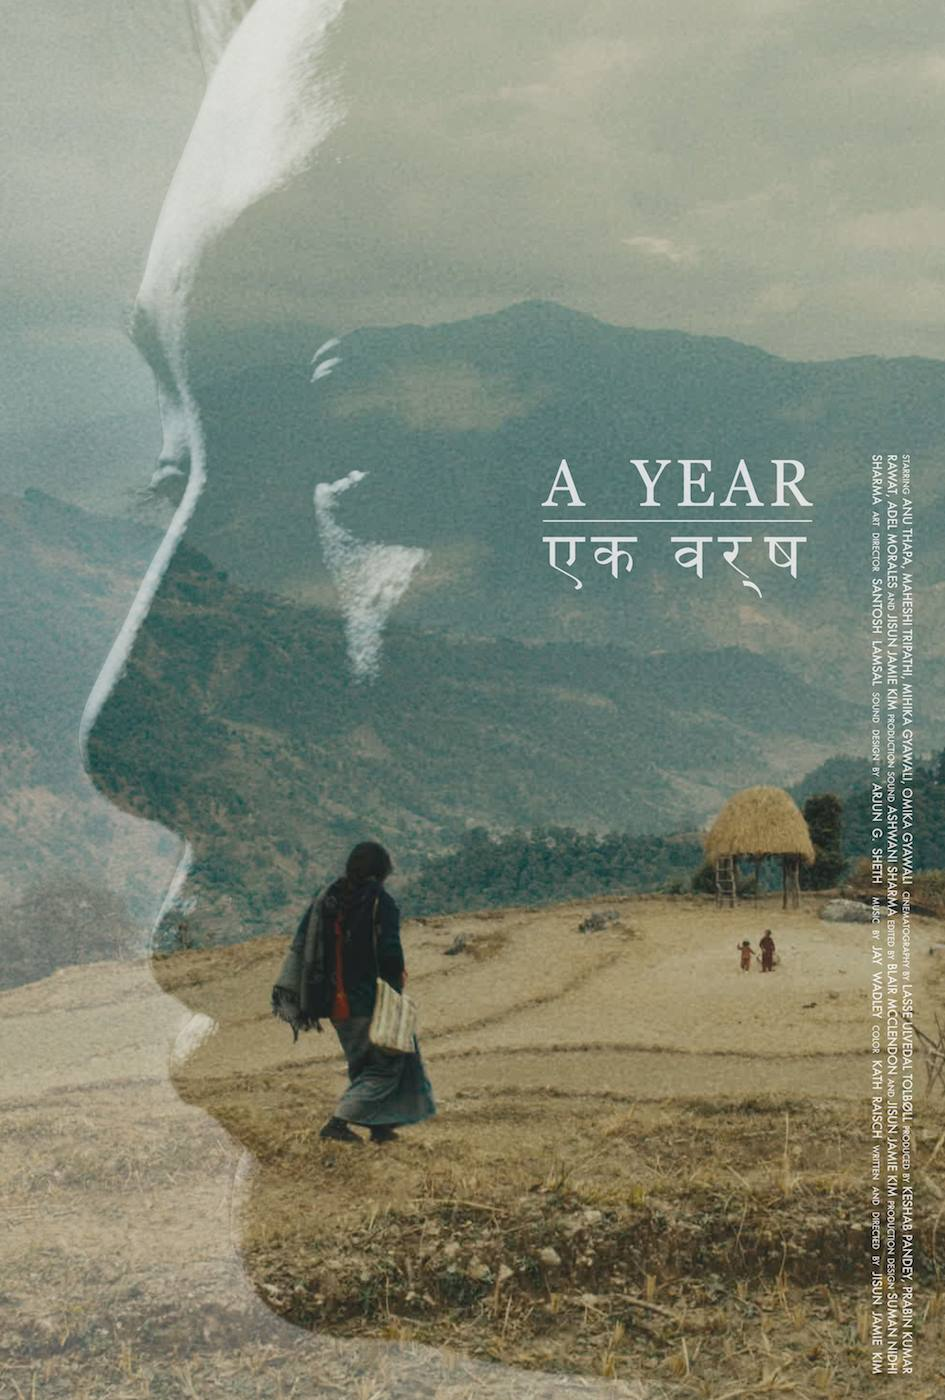 A Year poster